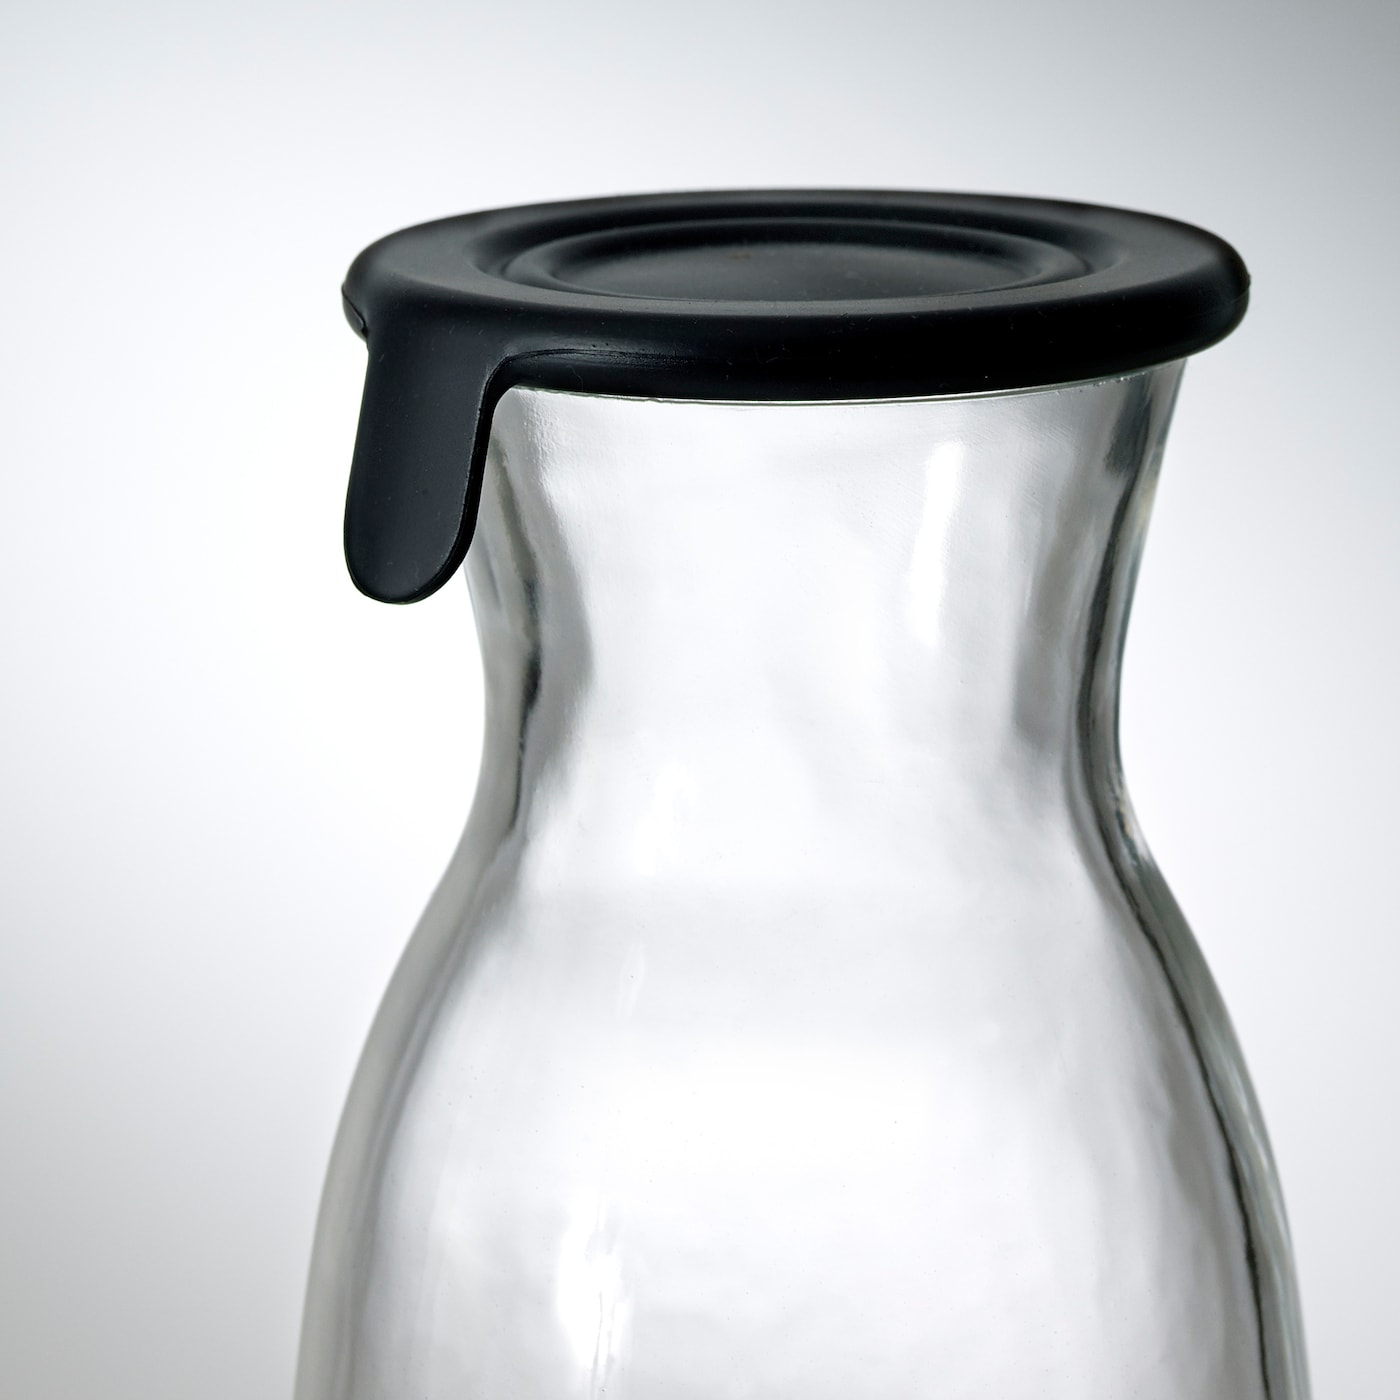 VARDAGEN Carafe with lid, clear glass, 1.0 l